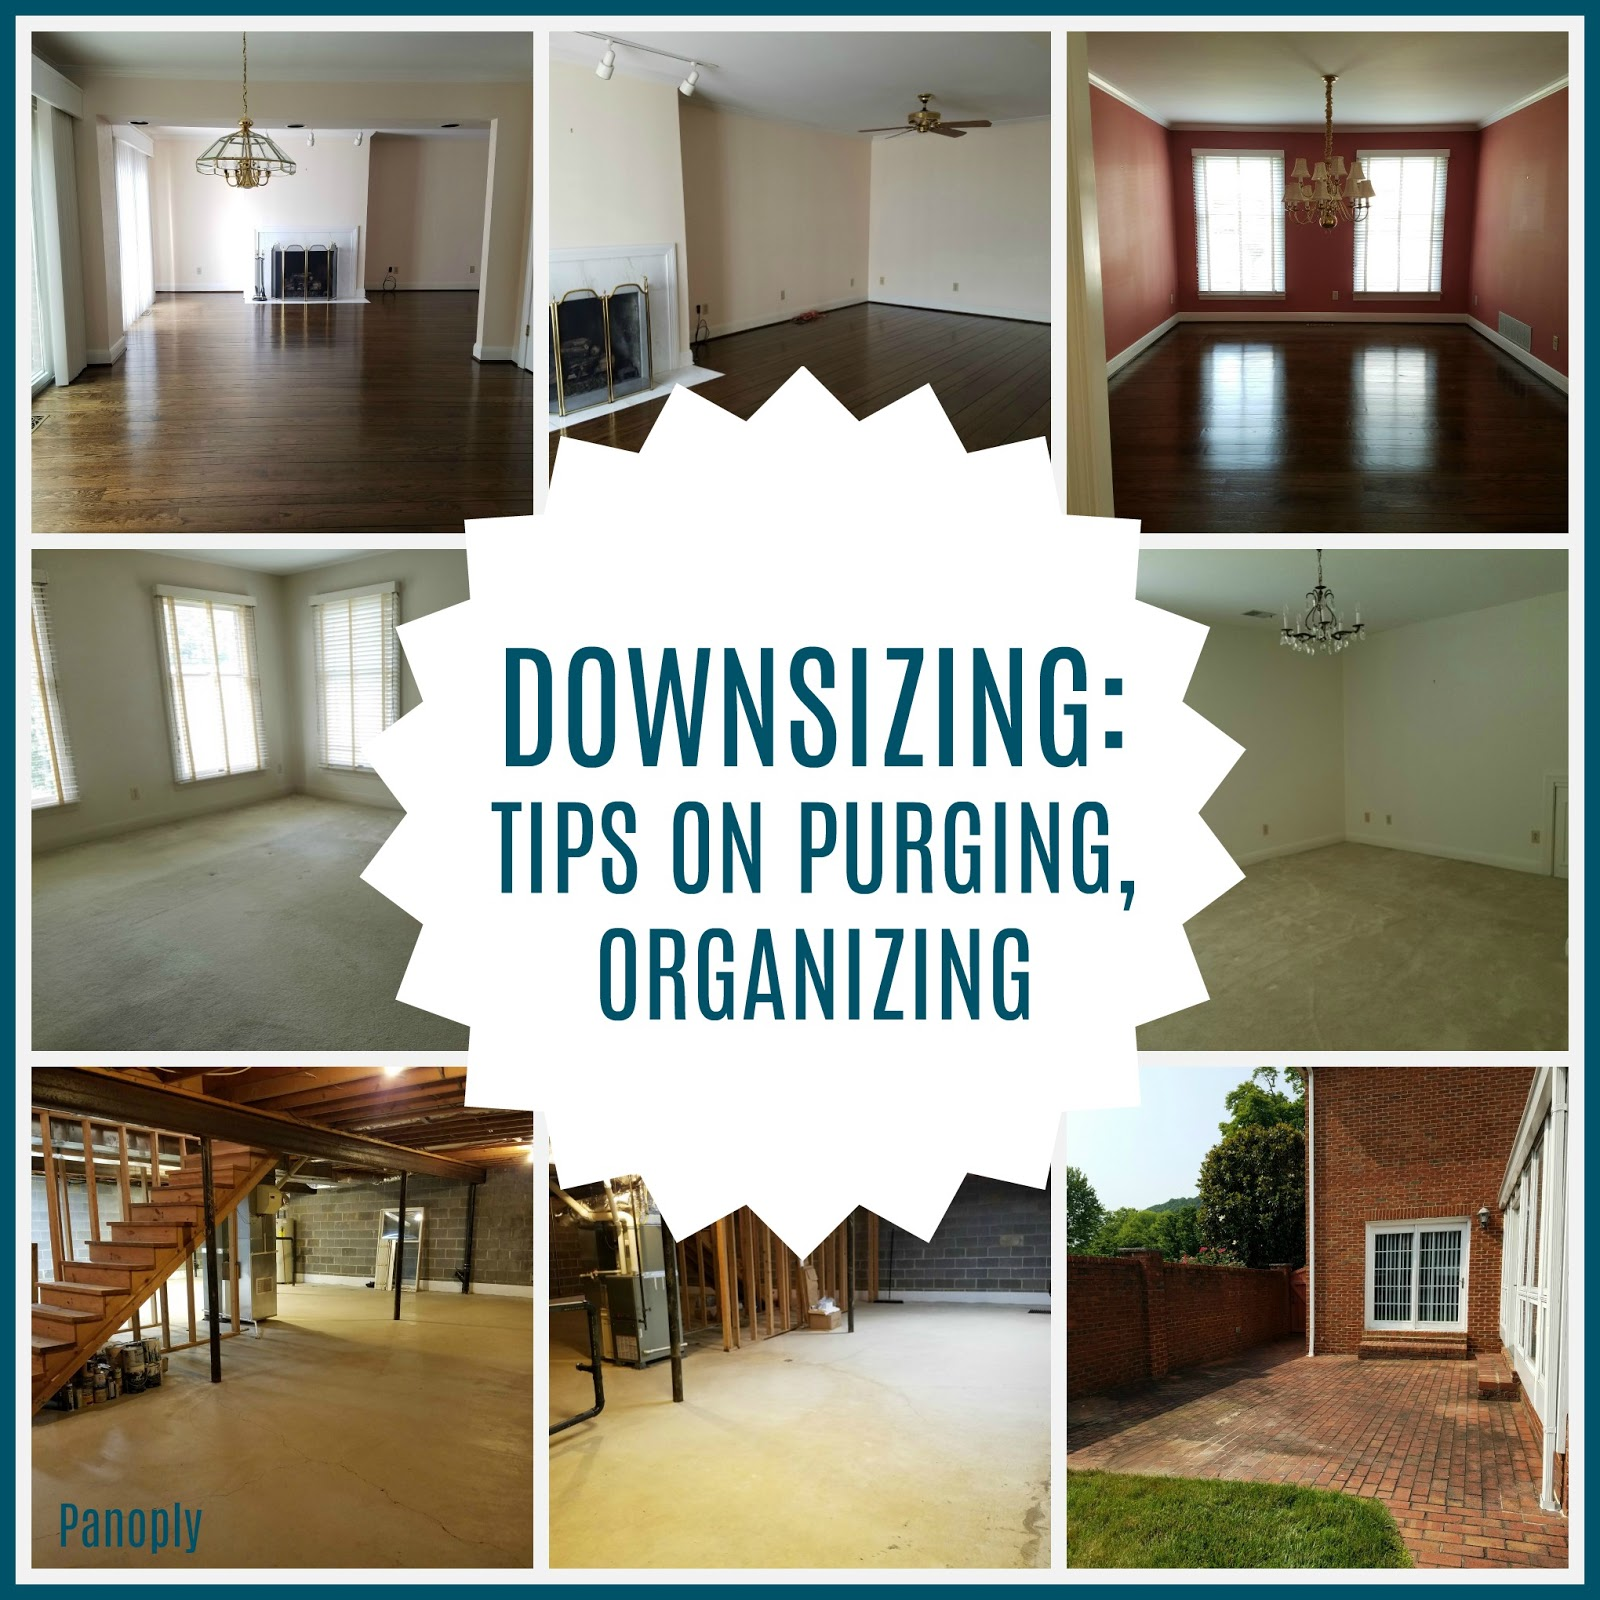 . Panoply  Downsizing  Tips on Purging  Organizing